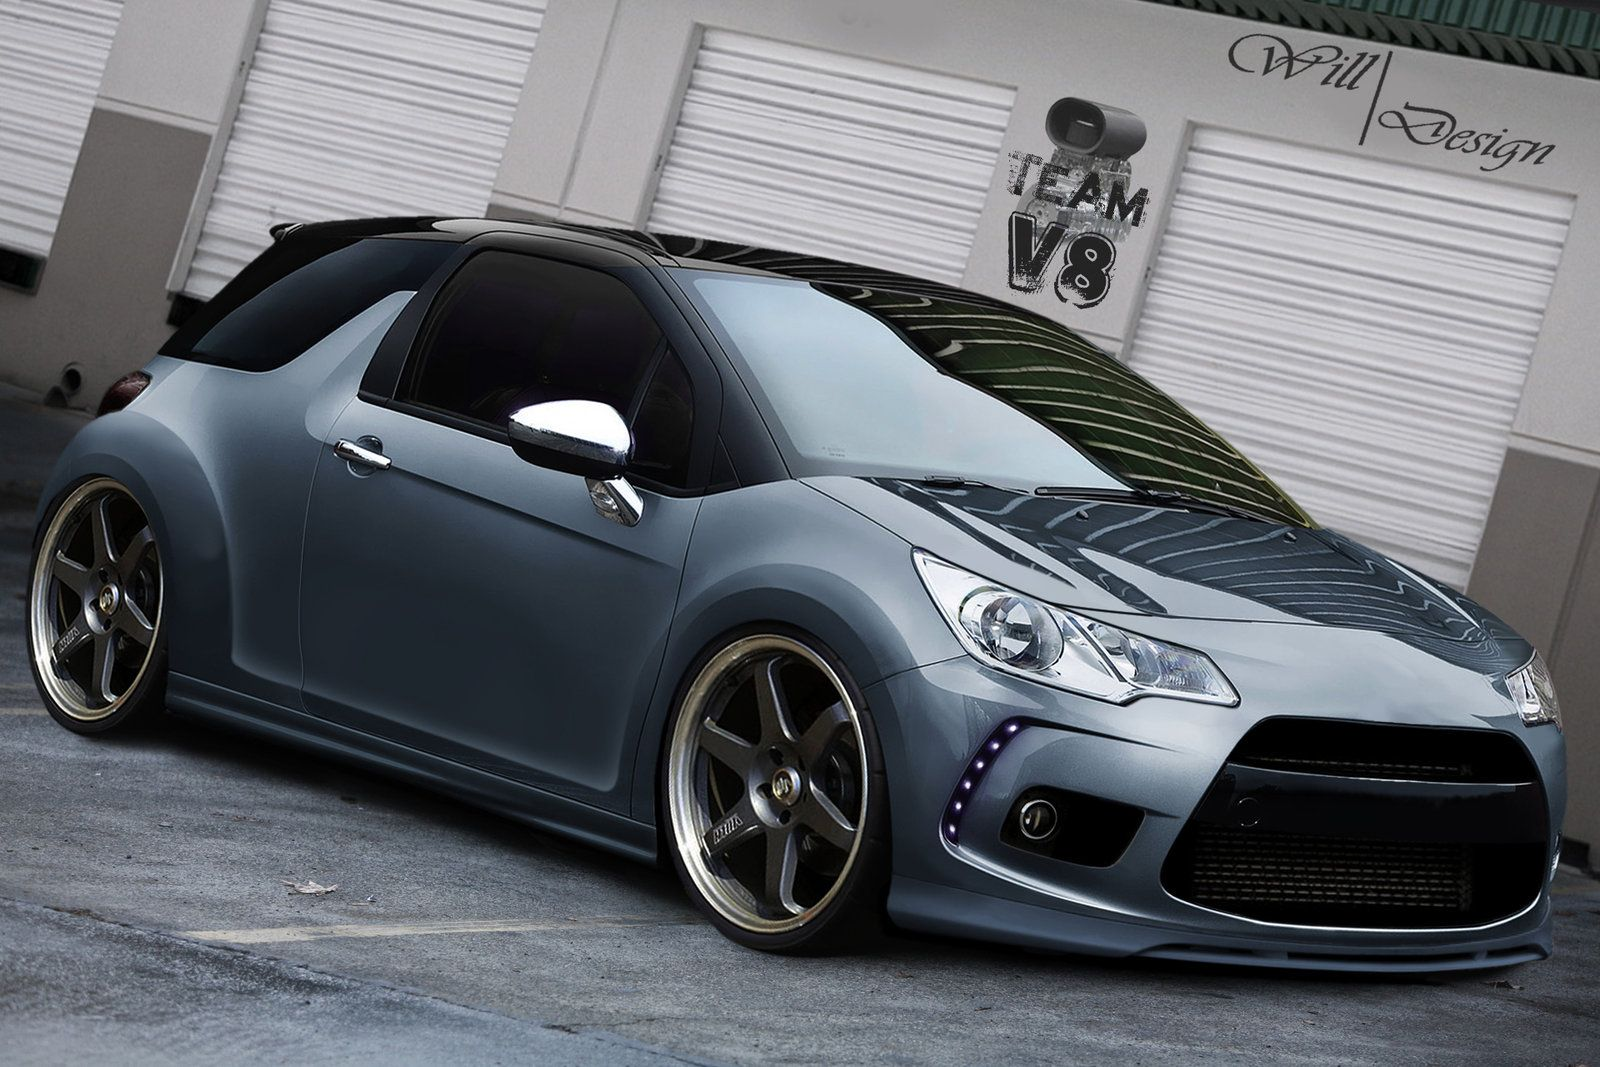 Citroen ds3 cabrio lead mat by murillodesign cars pinterest citroen ds3 cabrio lead mat by murillodesign cars pinterest citroen ds cars and dream cars vanachro Image collections